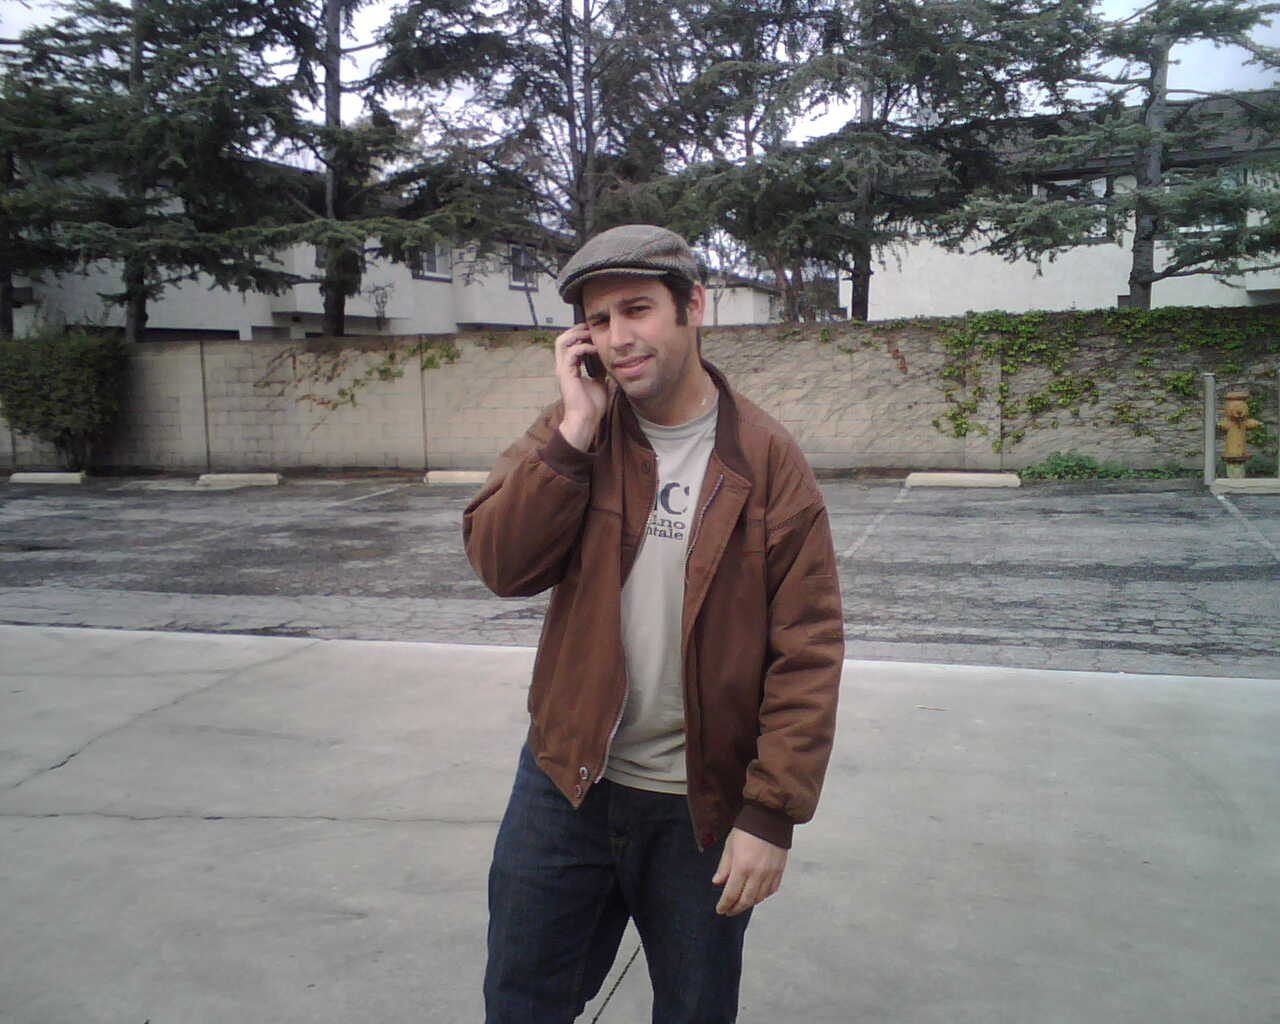 yeah well you tell that frickin moulinyan we're gonna settle the score in the supreme bowl at 7 o'clock, paesan'